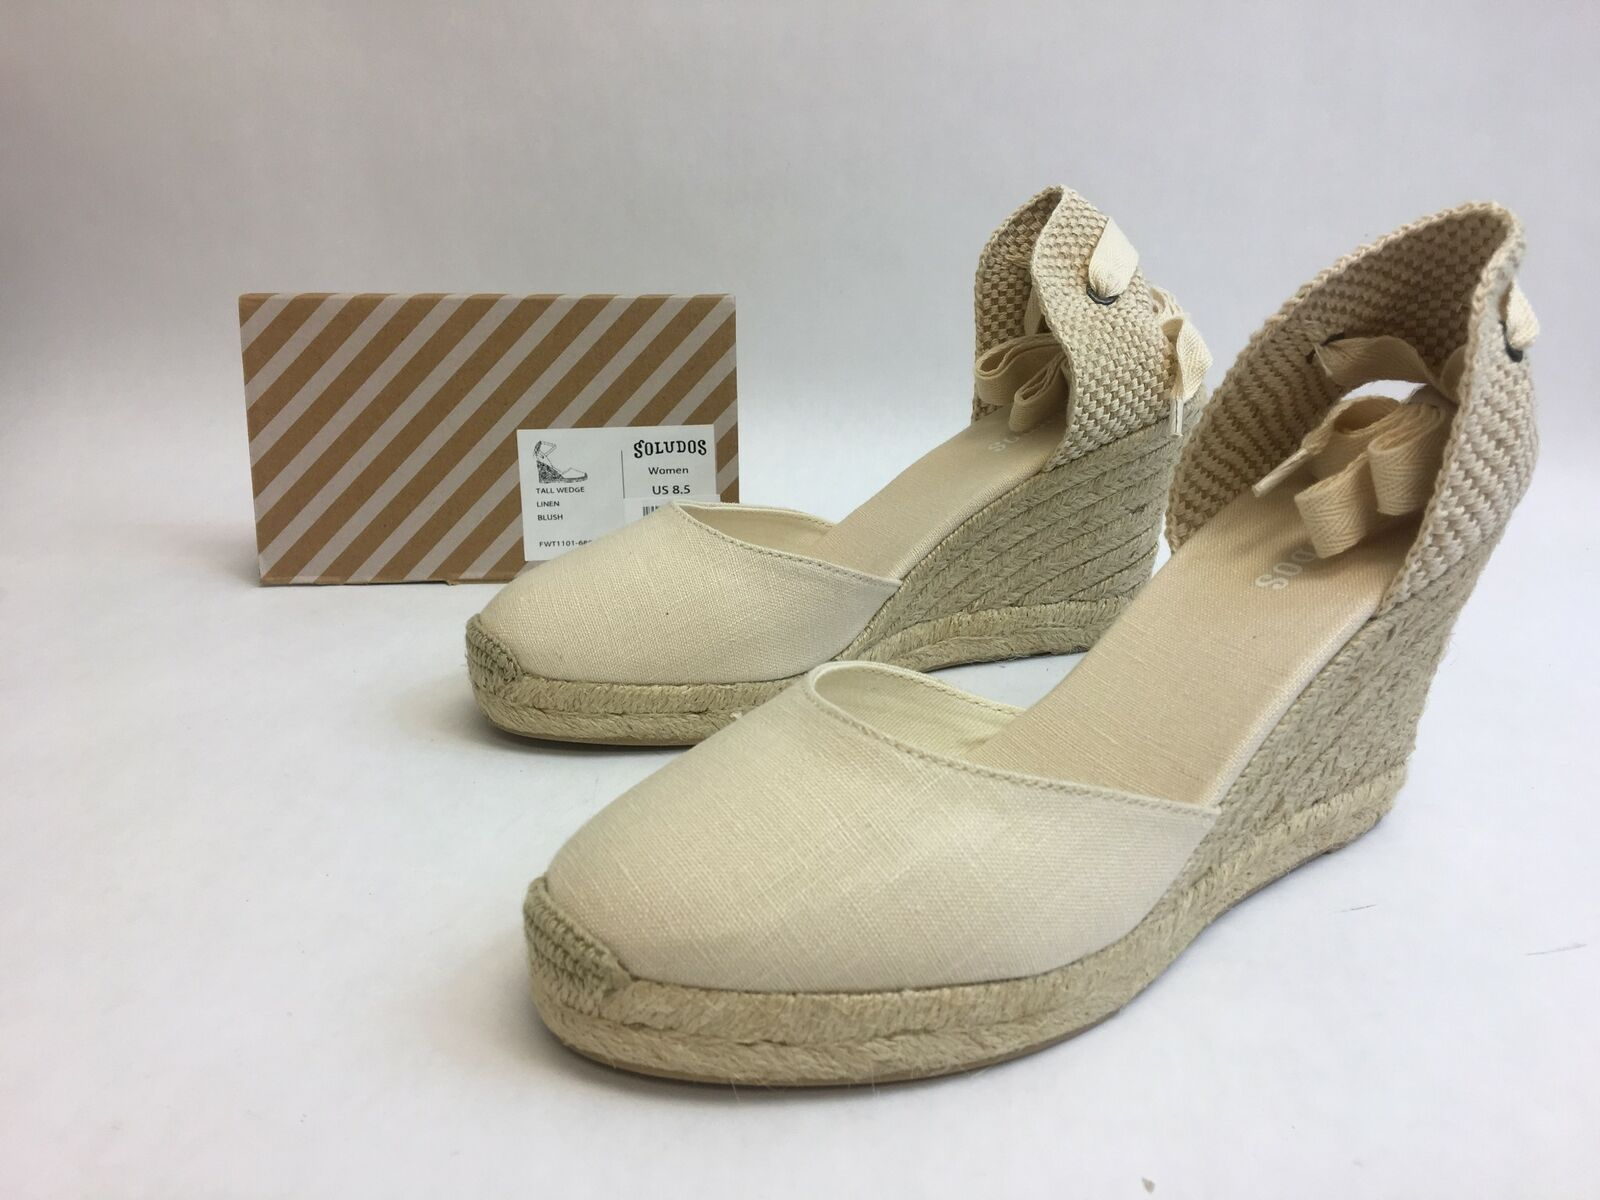 Soludos Linen Tall Wedge Ankle Wrap Sandals bluesh Womens Size 8.5 FWT1101-680